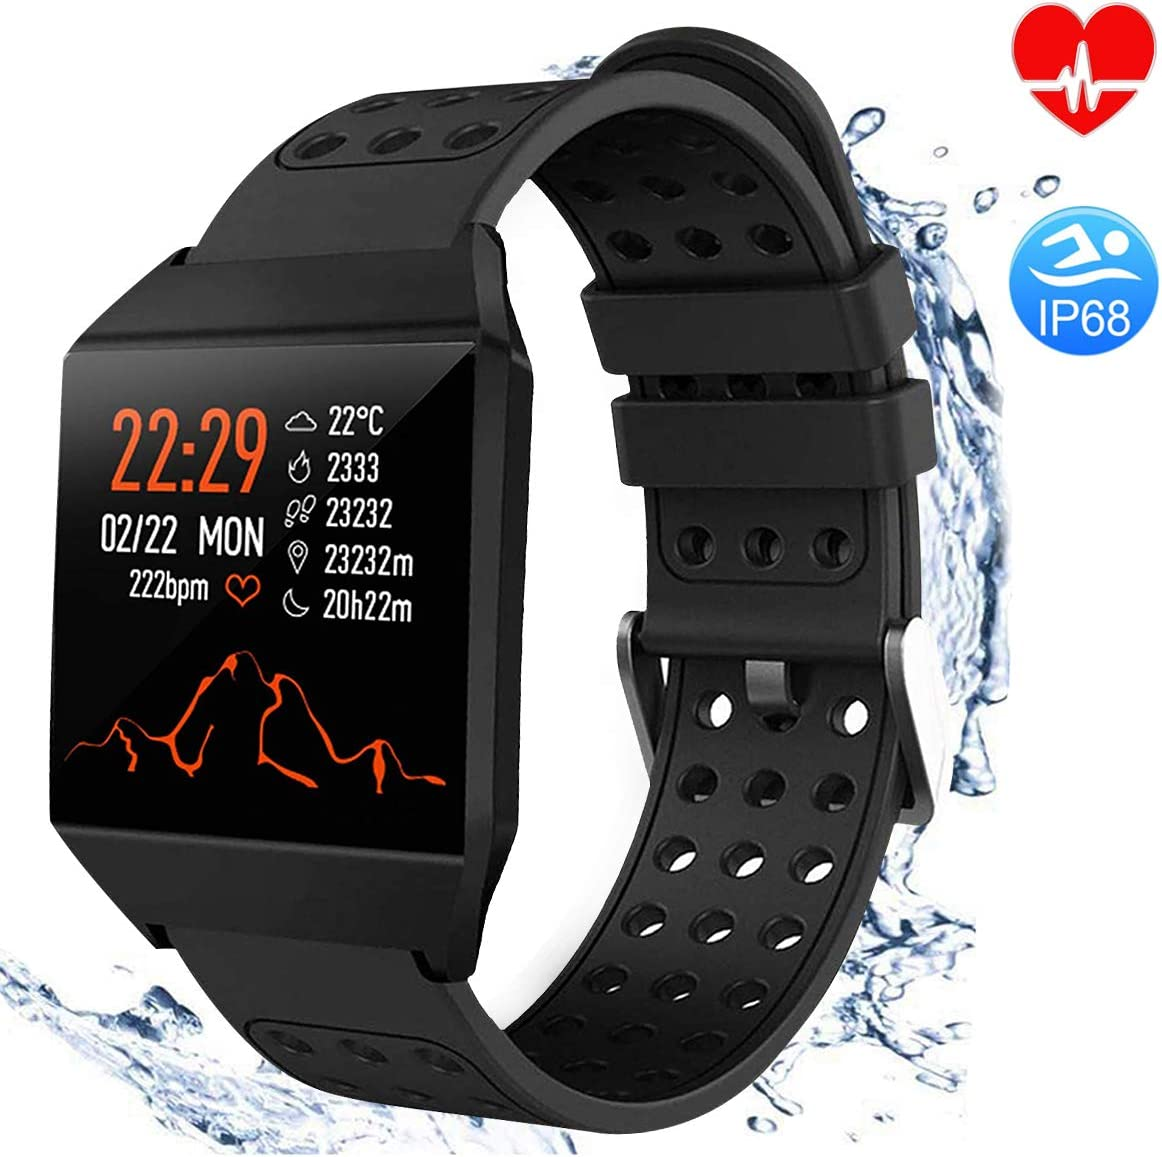 TagoBee TB10 Fitness Tracker IP67 Waterproof Smart Watch with Heart Rate Monitor Pedometer Calories Counter Touch Screen Bluetooth Smartwatch for ...